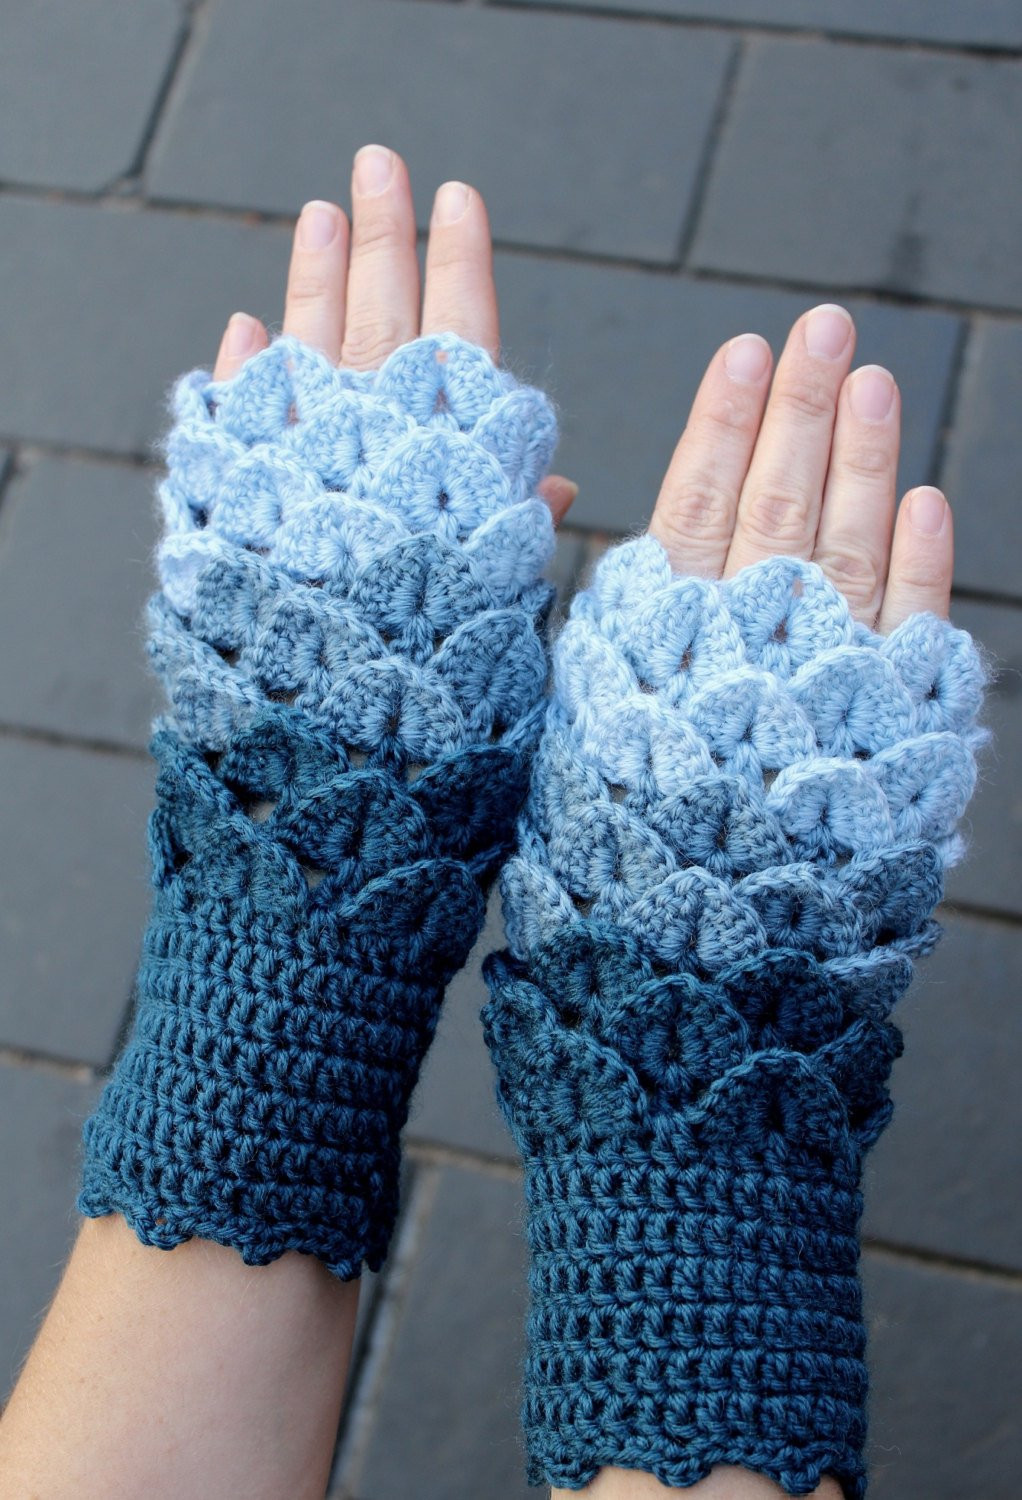 Crochet Gloves Luxury Hand Crocheted Fingerless Gloves Gloves & Mittens Winter Of Amazing 45 Ideas Crochet Gloves